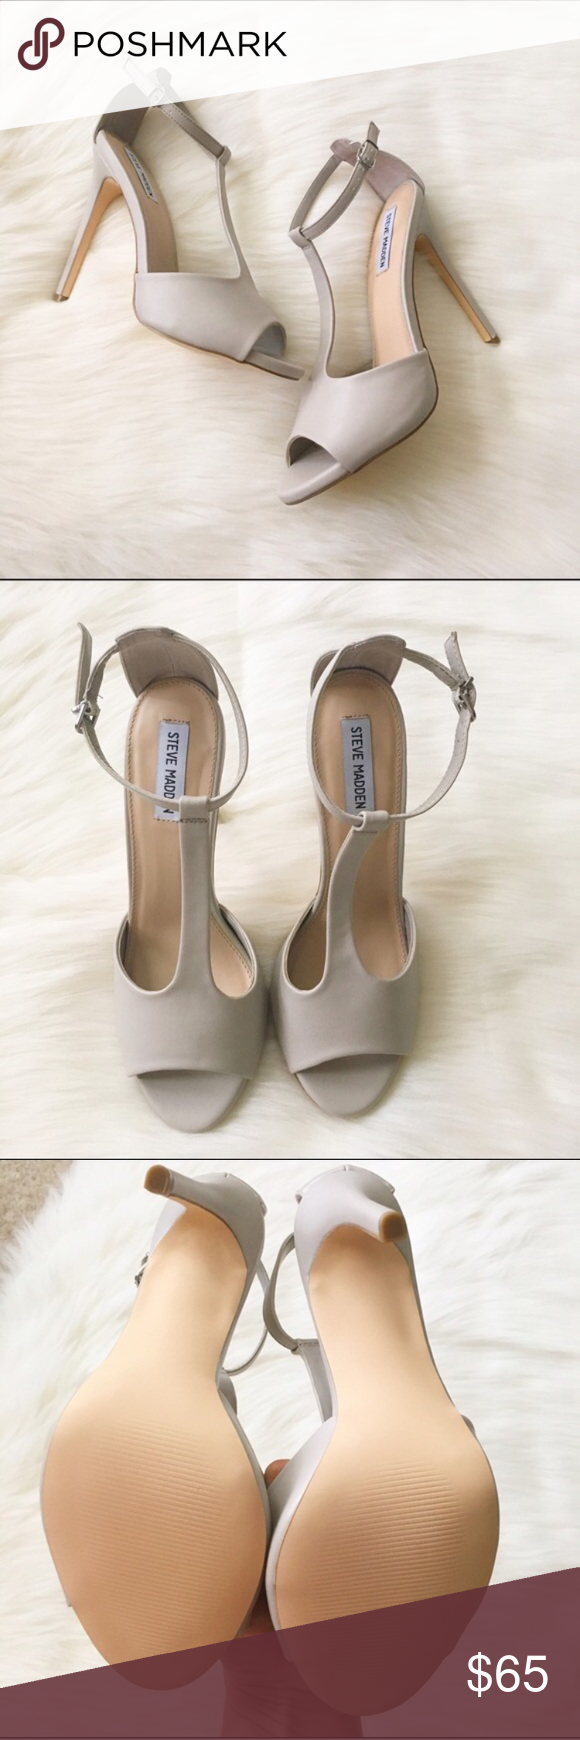 """Steve Madden Socialyt T-Strap Sandals NWT - perfect condition! Gorgeous Steve Madden nude peep toe T-Strap wedges. 5"""" height. Pretty bone/light gray leather color. No modeling/trades. Steve Madden Shoes Heels"""